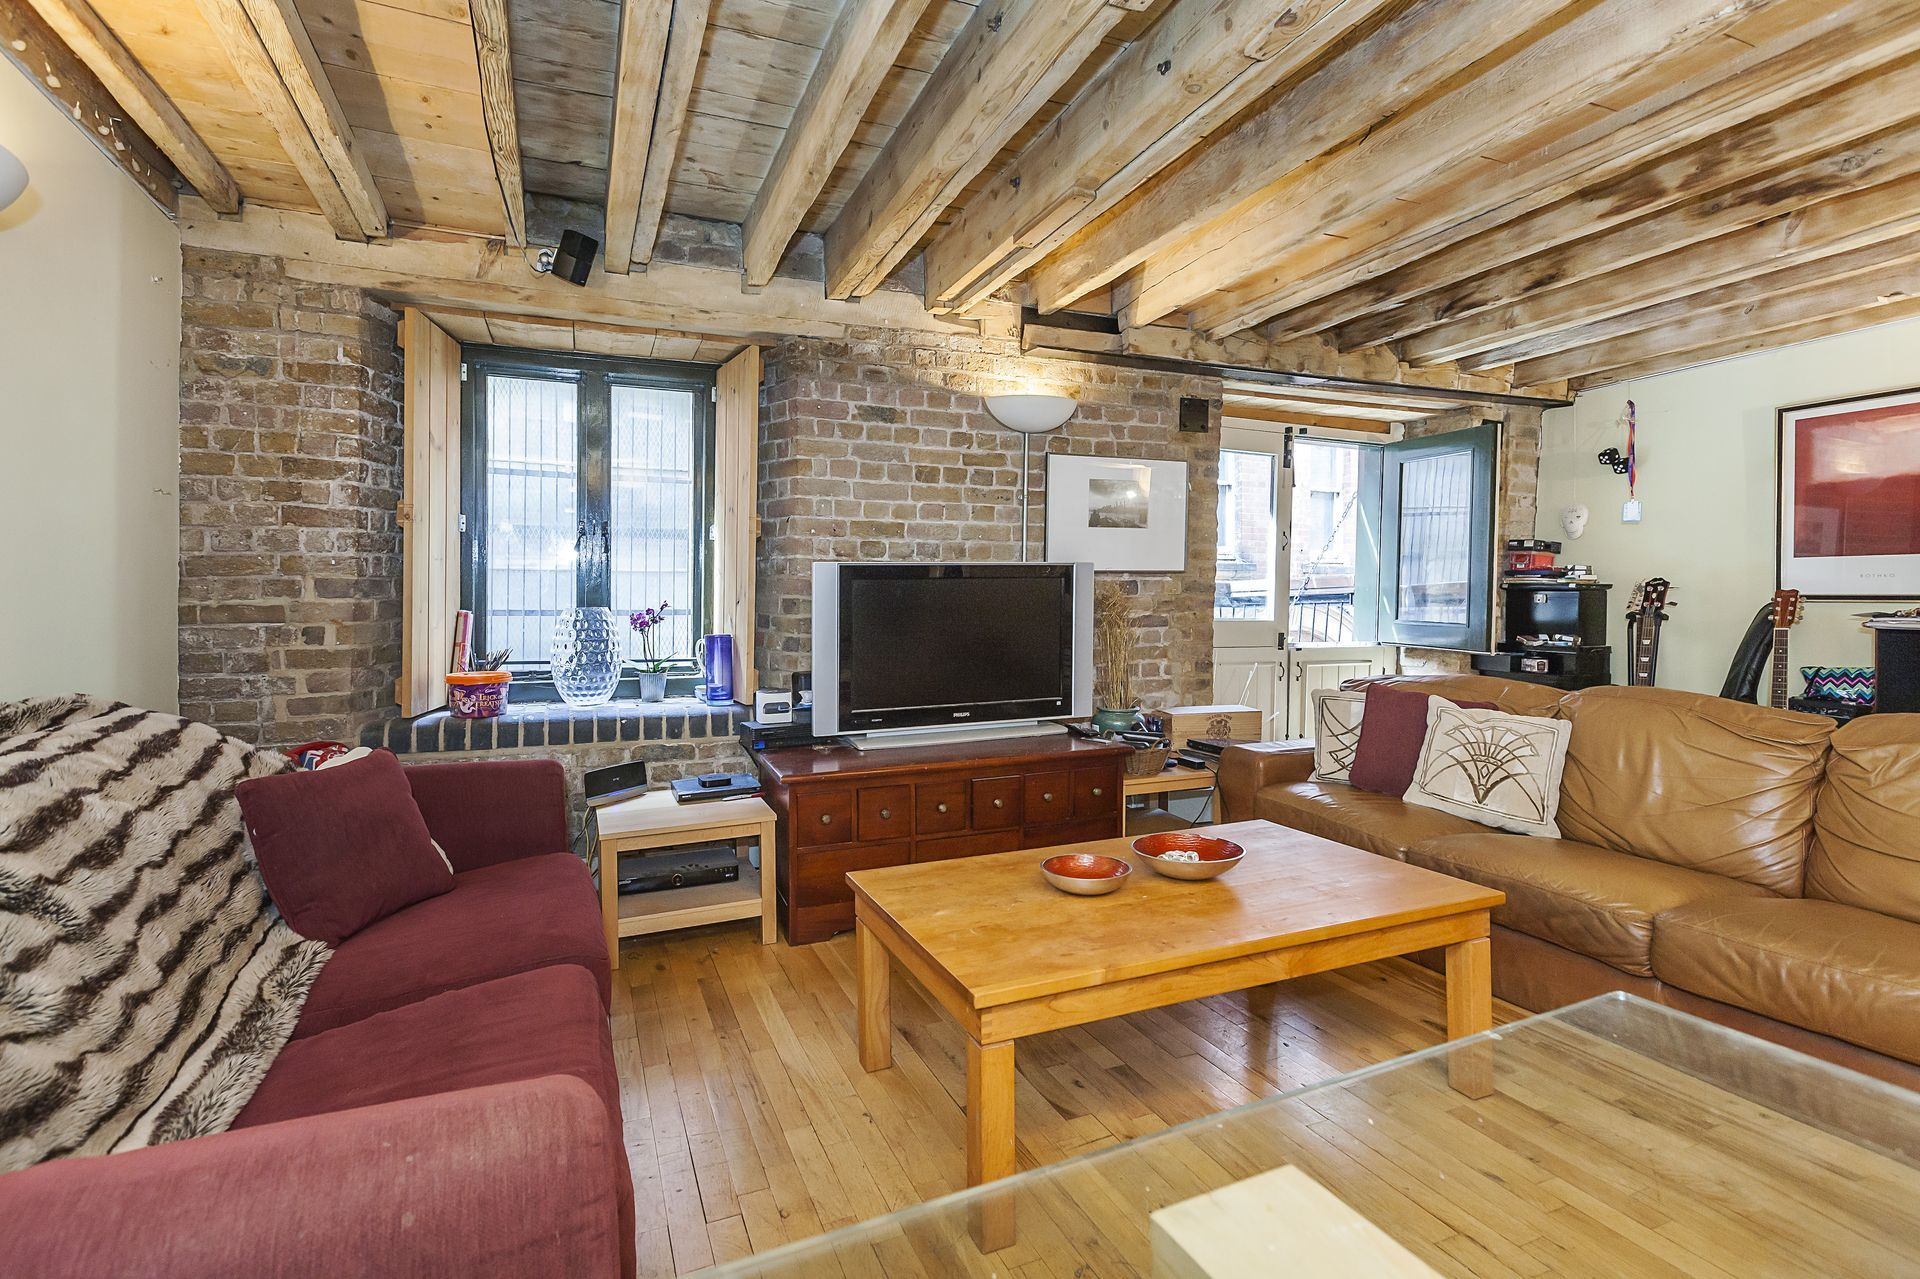 Loft-apartments for sale on London | London Property ...